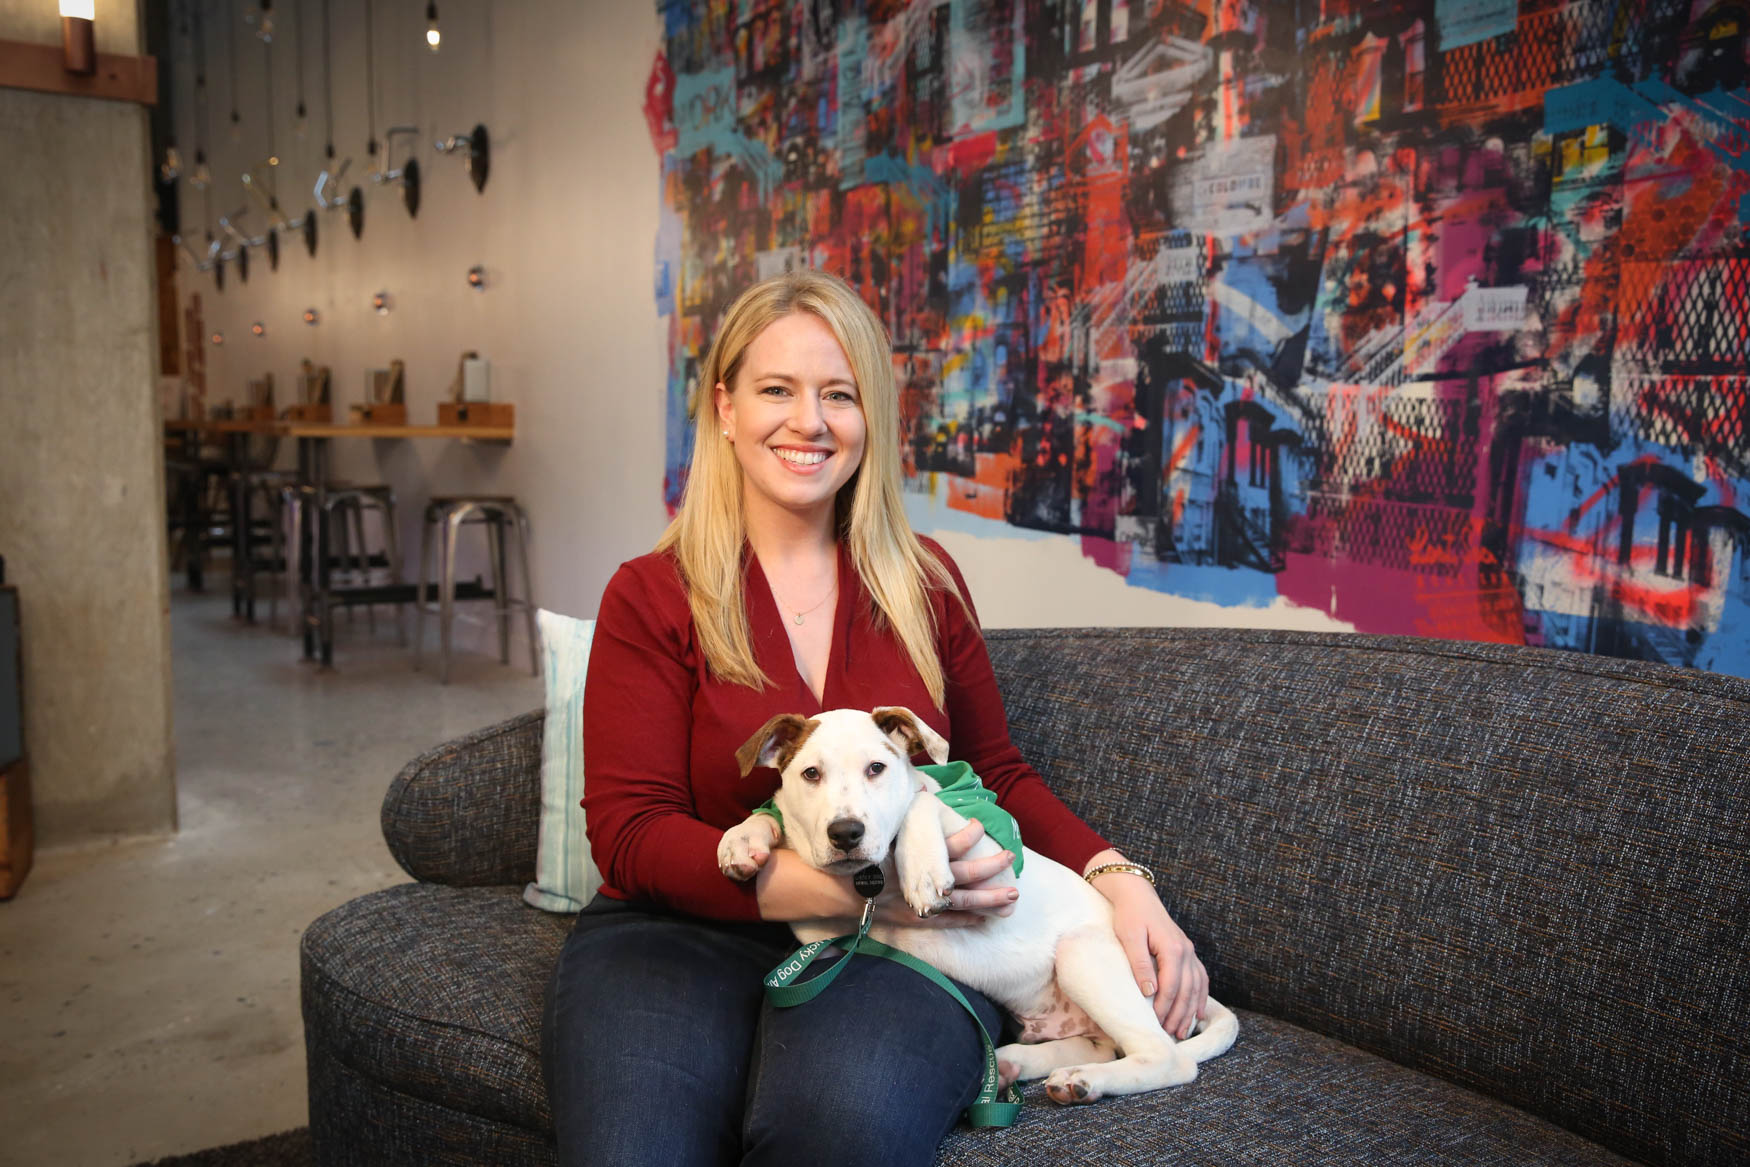 Meet Bartholamul and Connie, a  3.5-month-old Lab/ Terrier mix and a 31-year-old human respectively. Photo location: Moxy Washington, D.C. Downtown (Image: Amanda Andrade-Rhoades/ DC Refined)